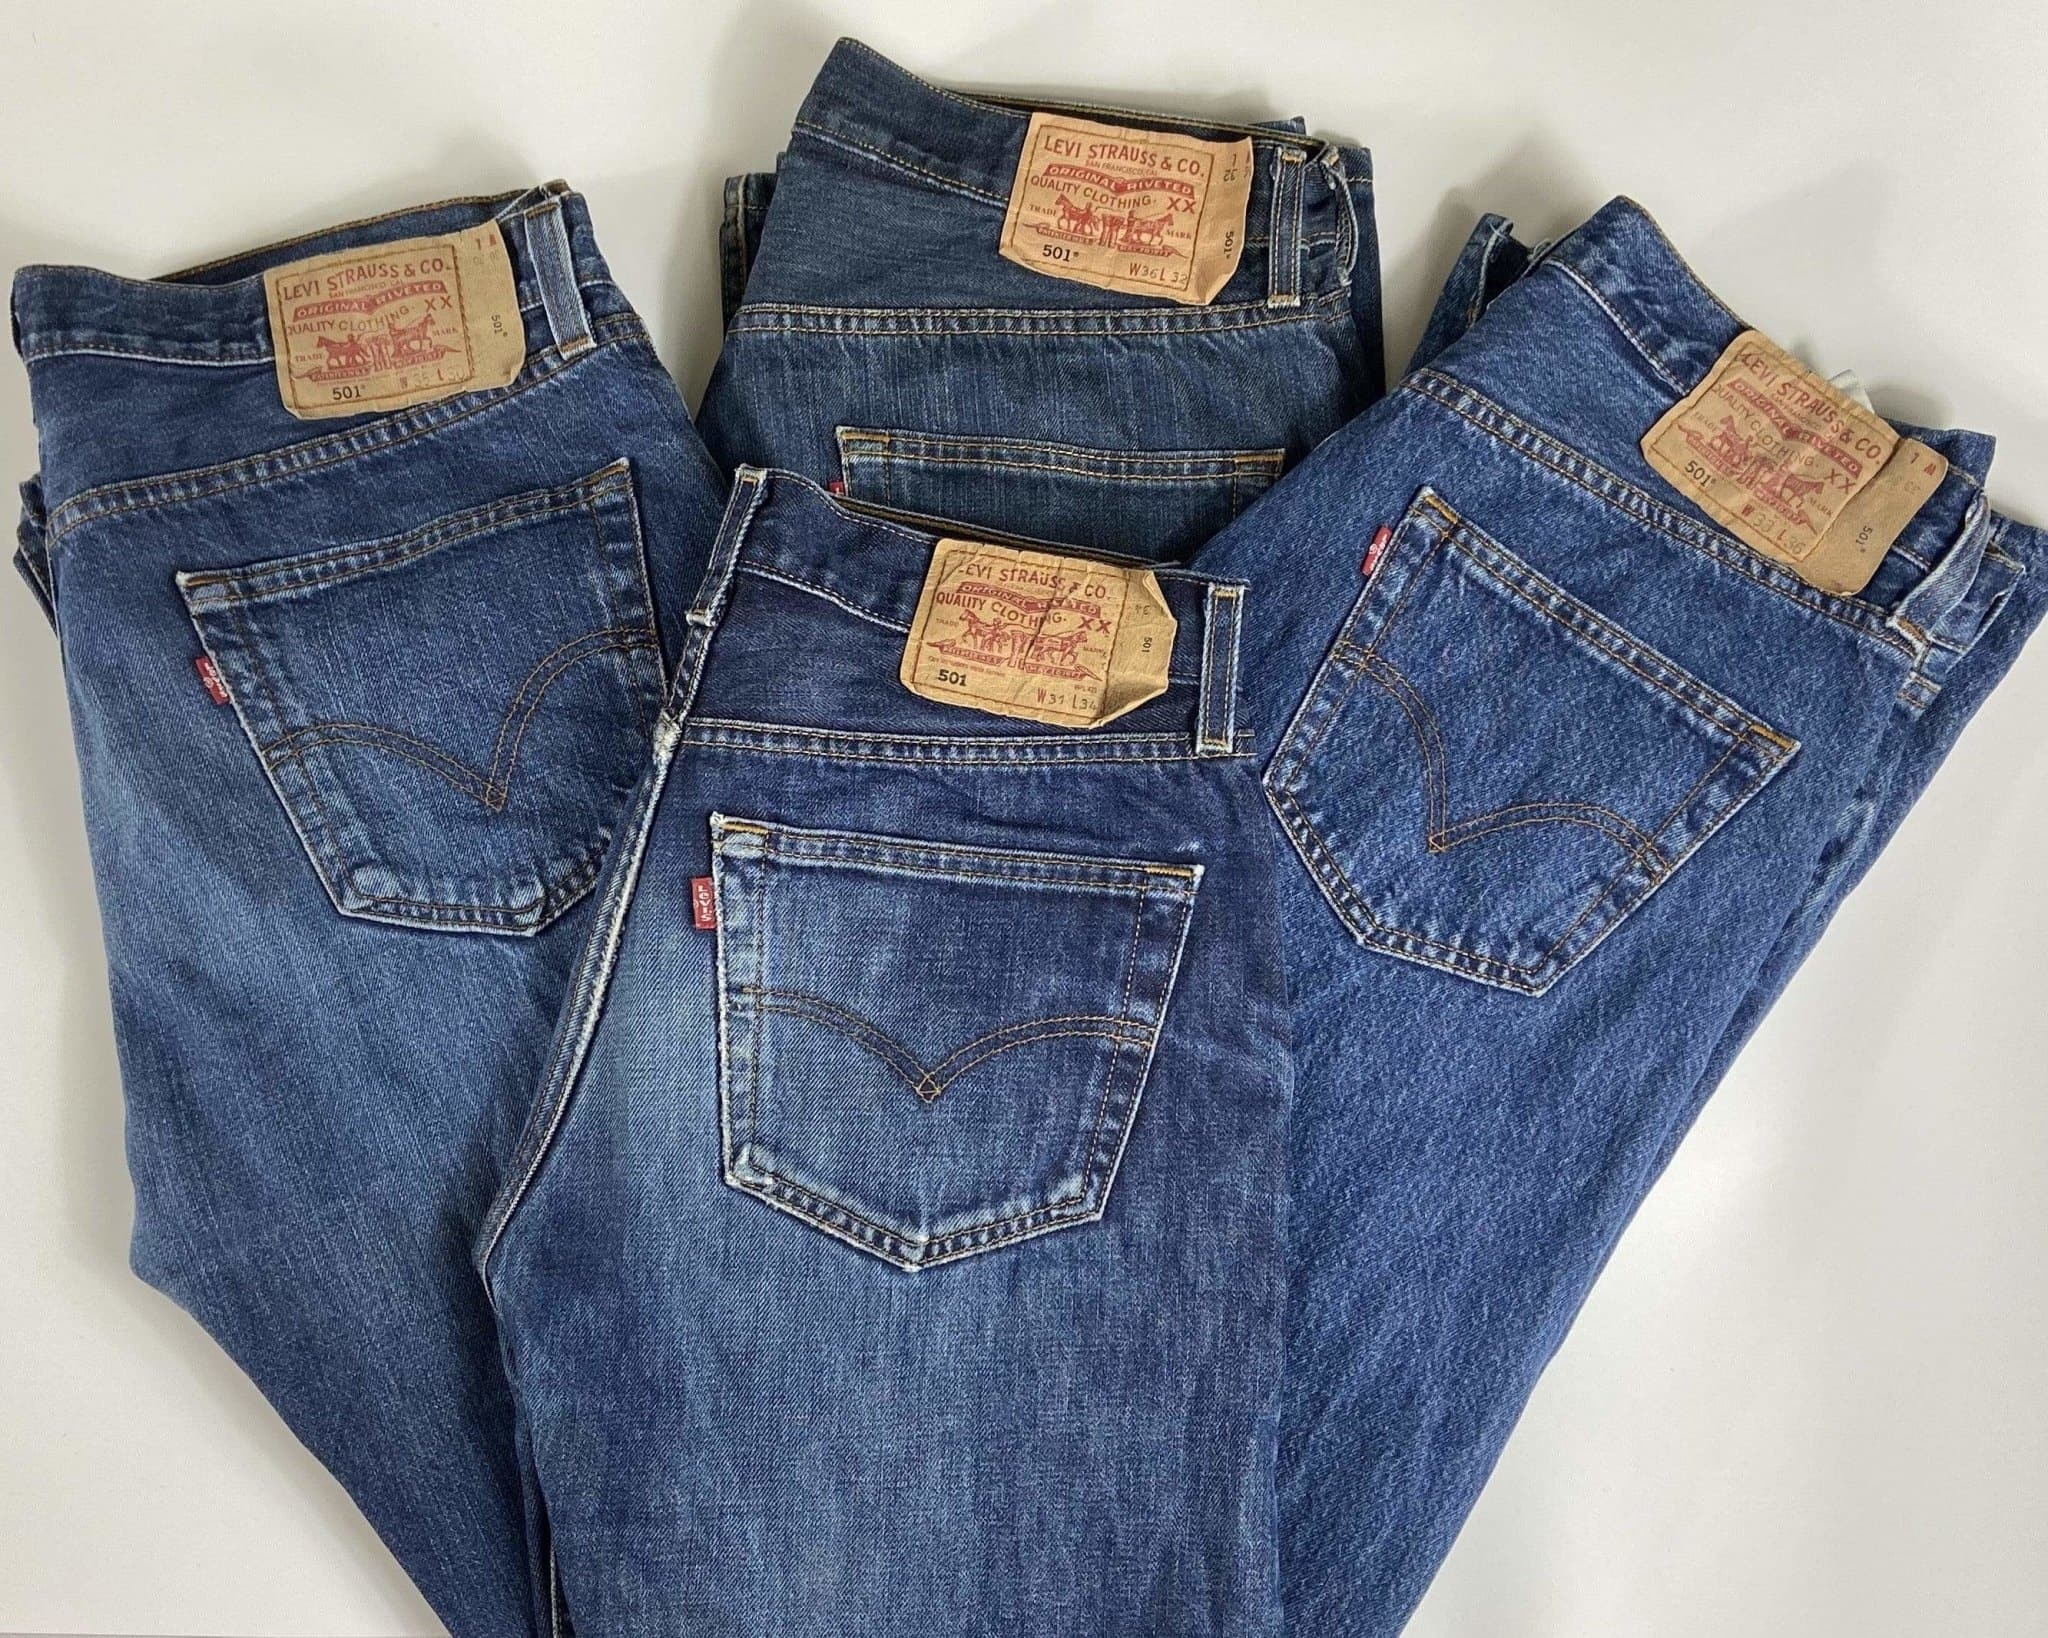 Vintage Levi's Classic 501 Jeans W29 L32 (DHLB4) - Discounted Deals UK